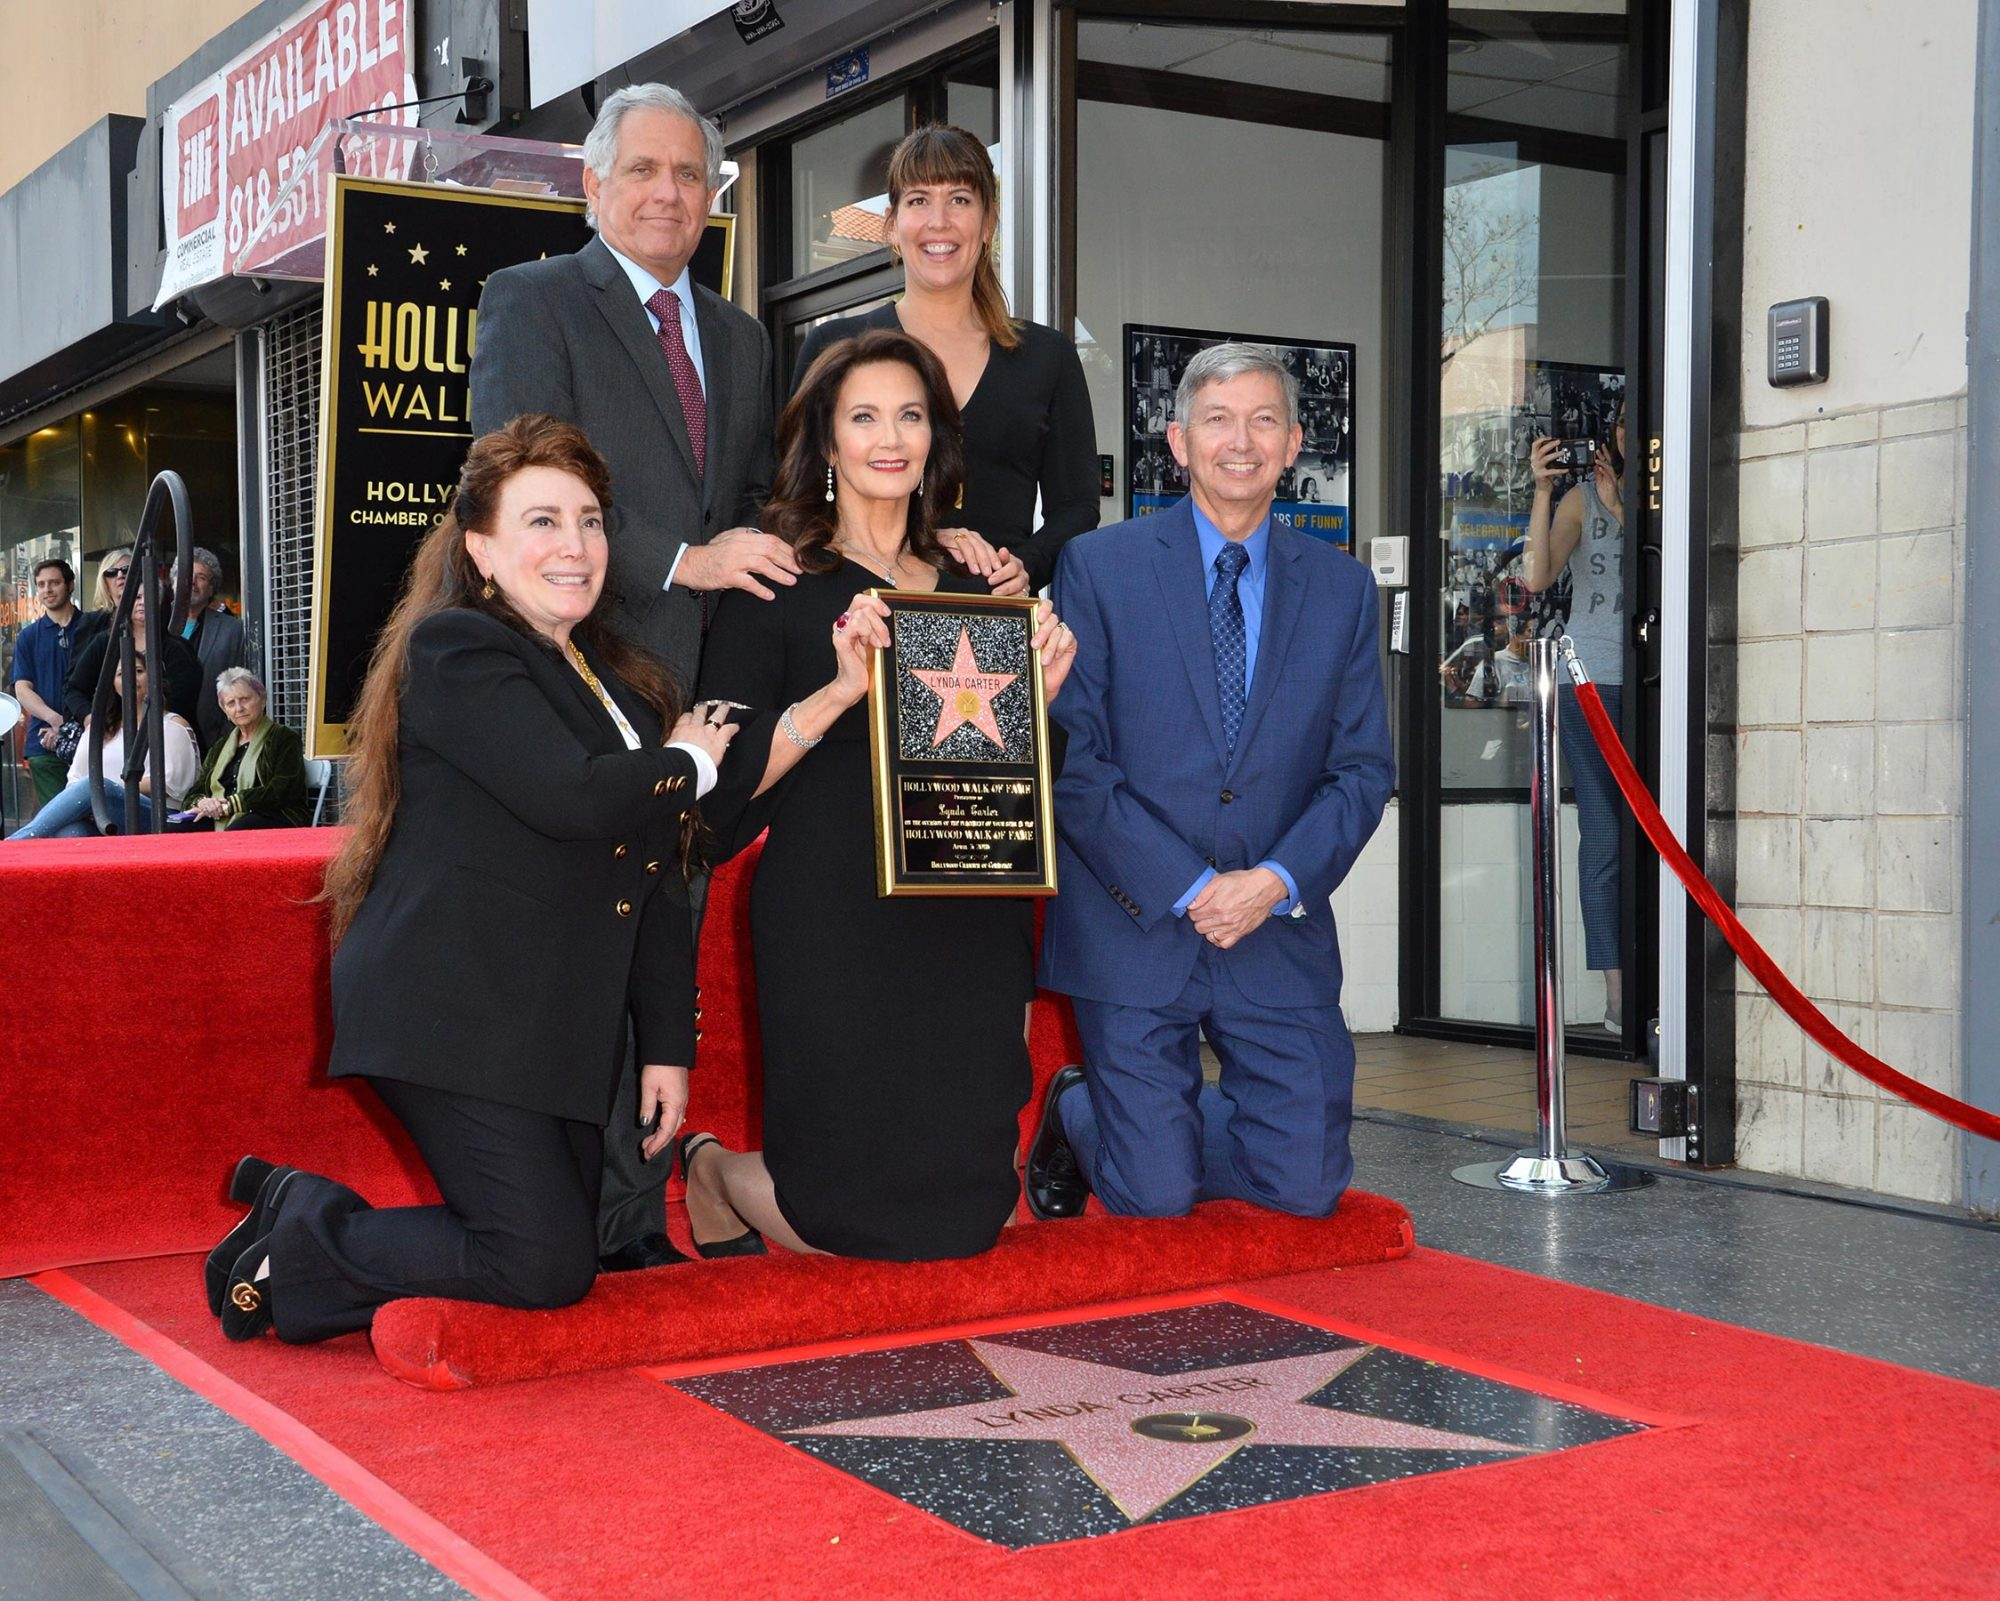 Lynda Carter honored with a Star on the Hollywood Walk of Fame, Los Angeles, USA - 3 Apr 2018